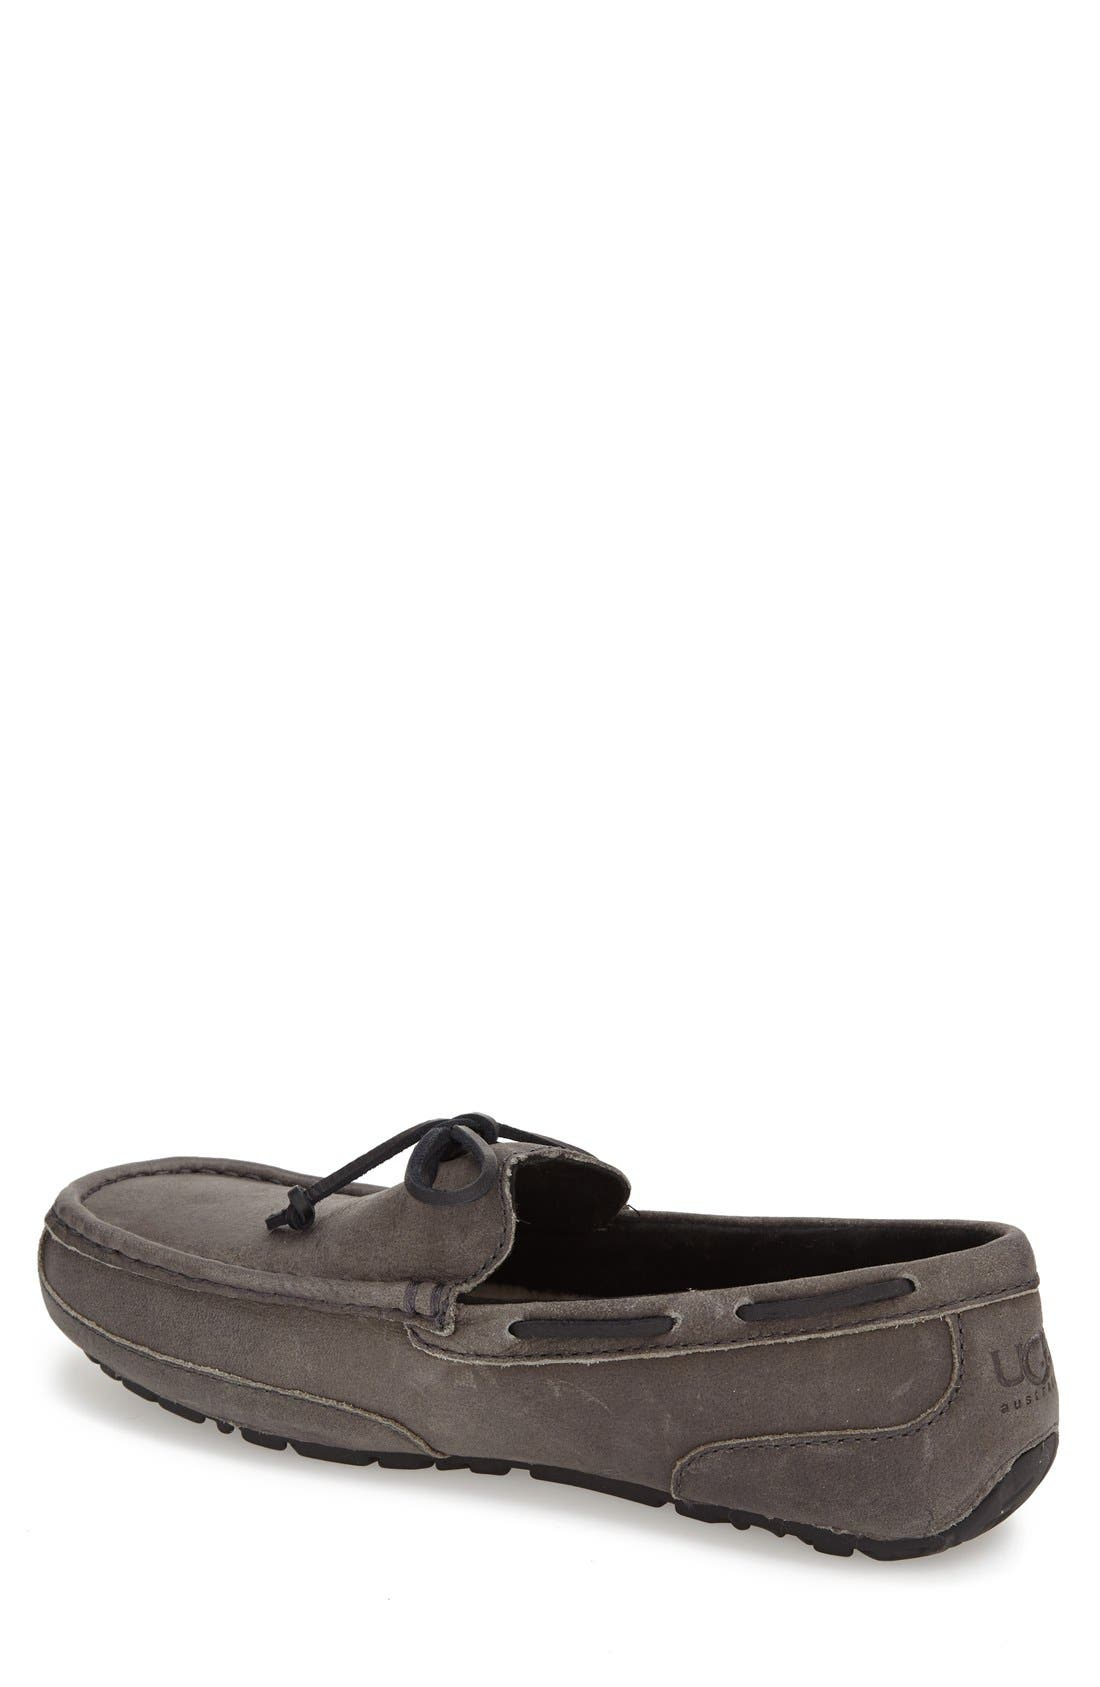 'Chester' Driving Loafer,                             Alternate thumbnail 21, color,